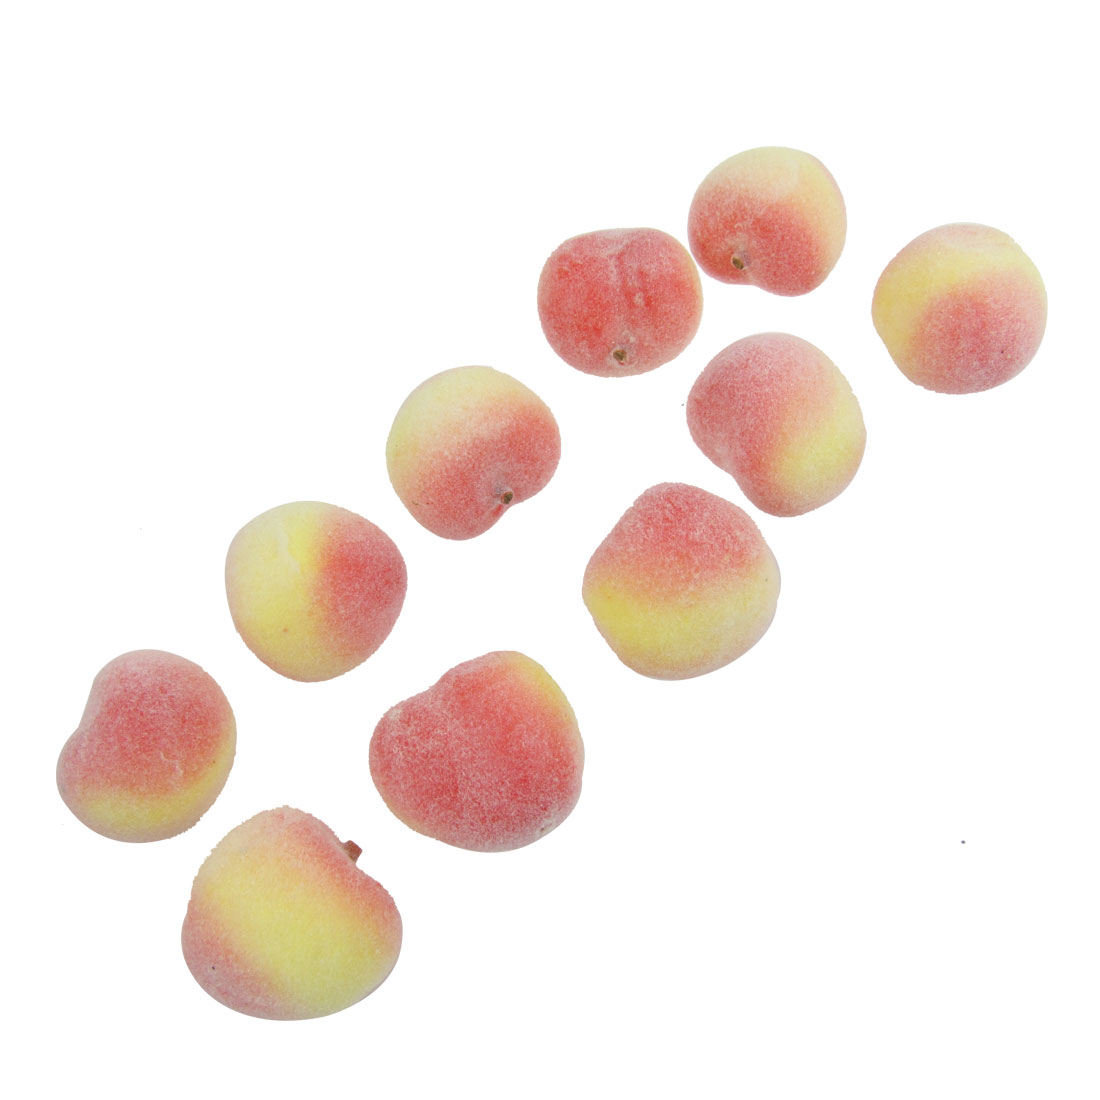 10 Pcs Faux Foam Craft Peach Simulation Fruits Table Decor